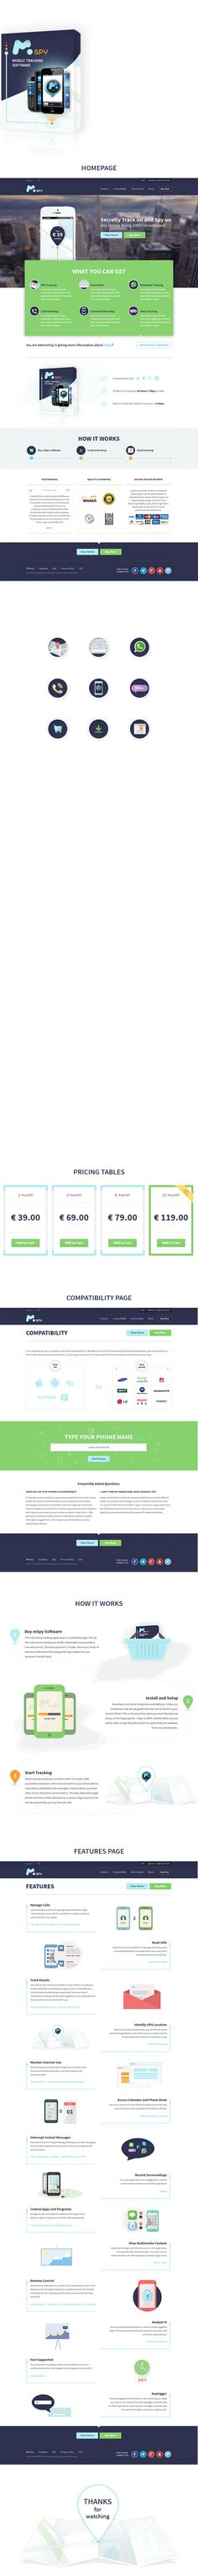 mSpy - flat corporate website by Olia Gozha, via Behance